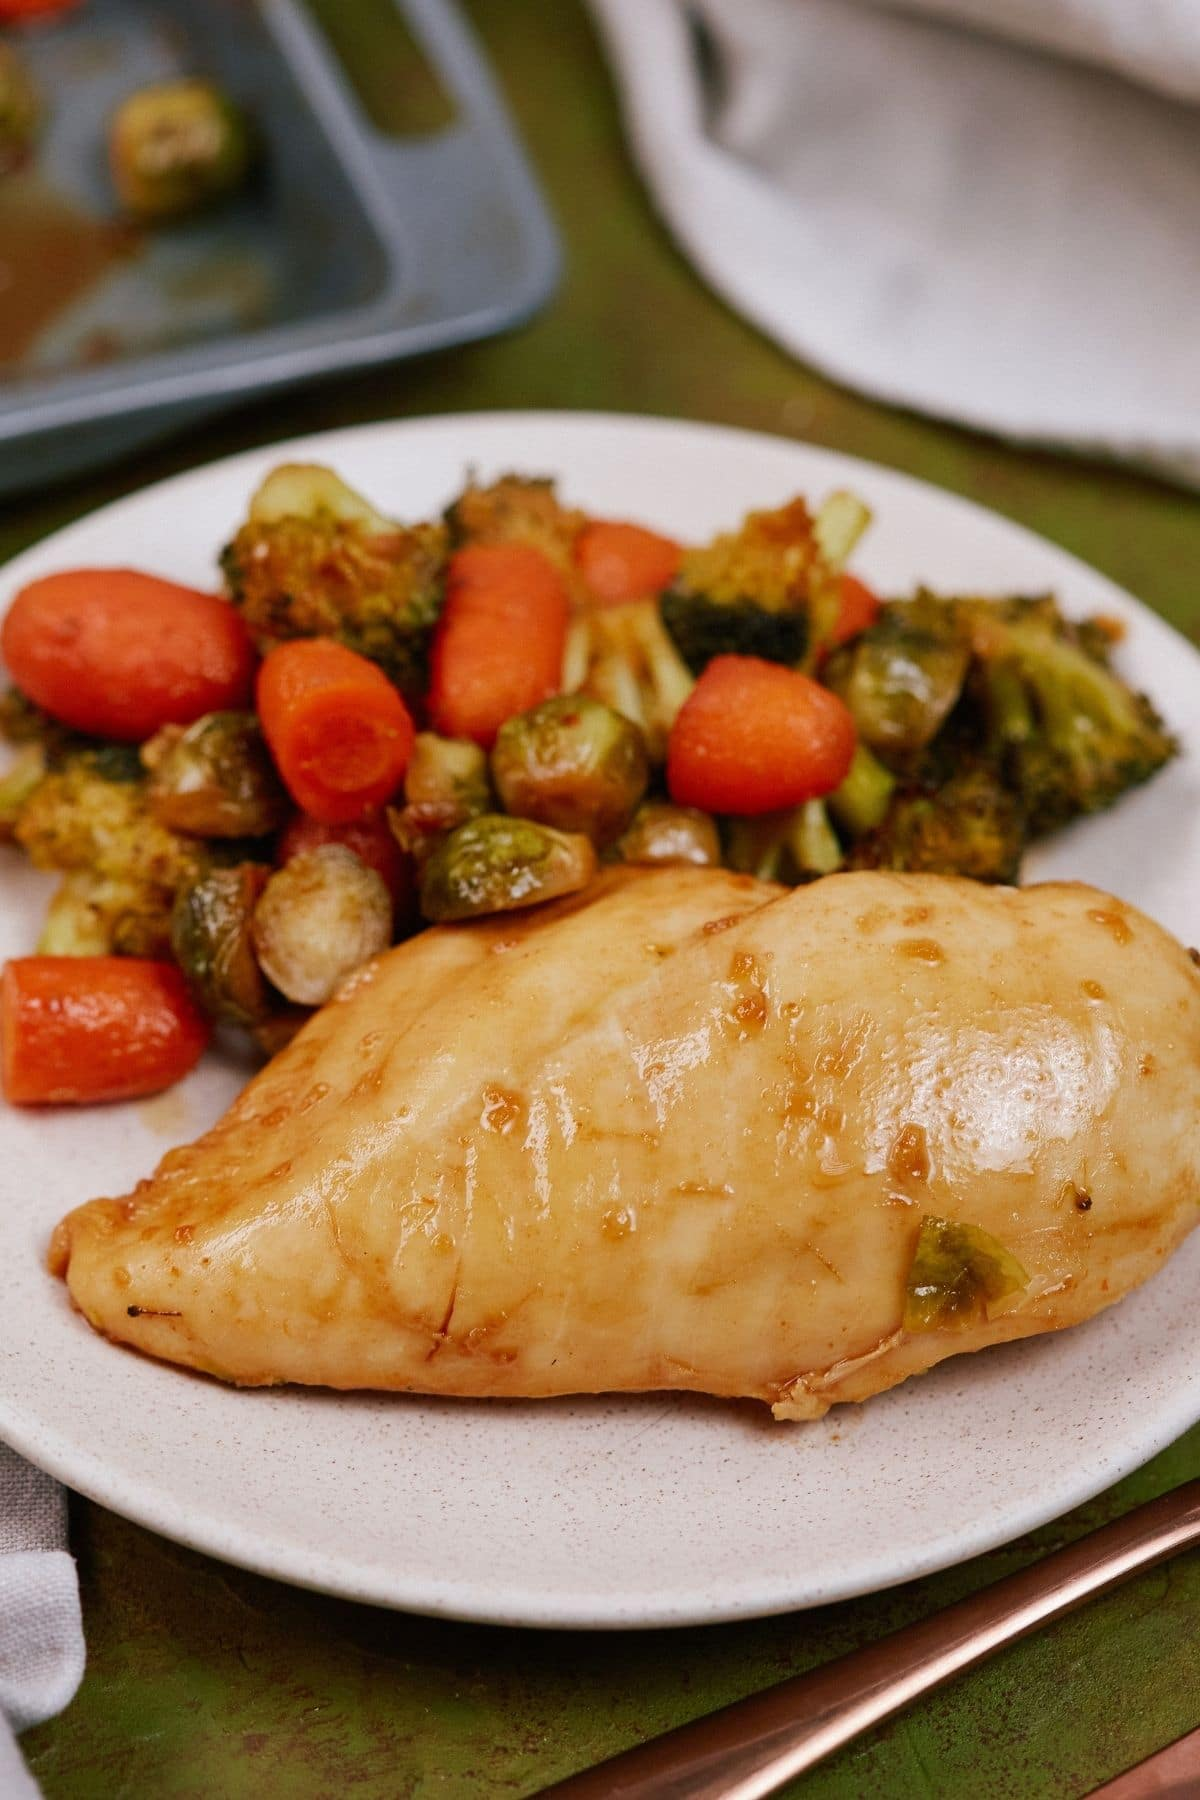 Chicken and vegetables on plate next to baking sheet